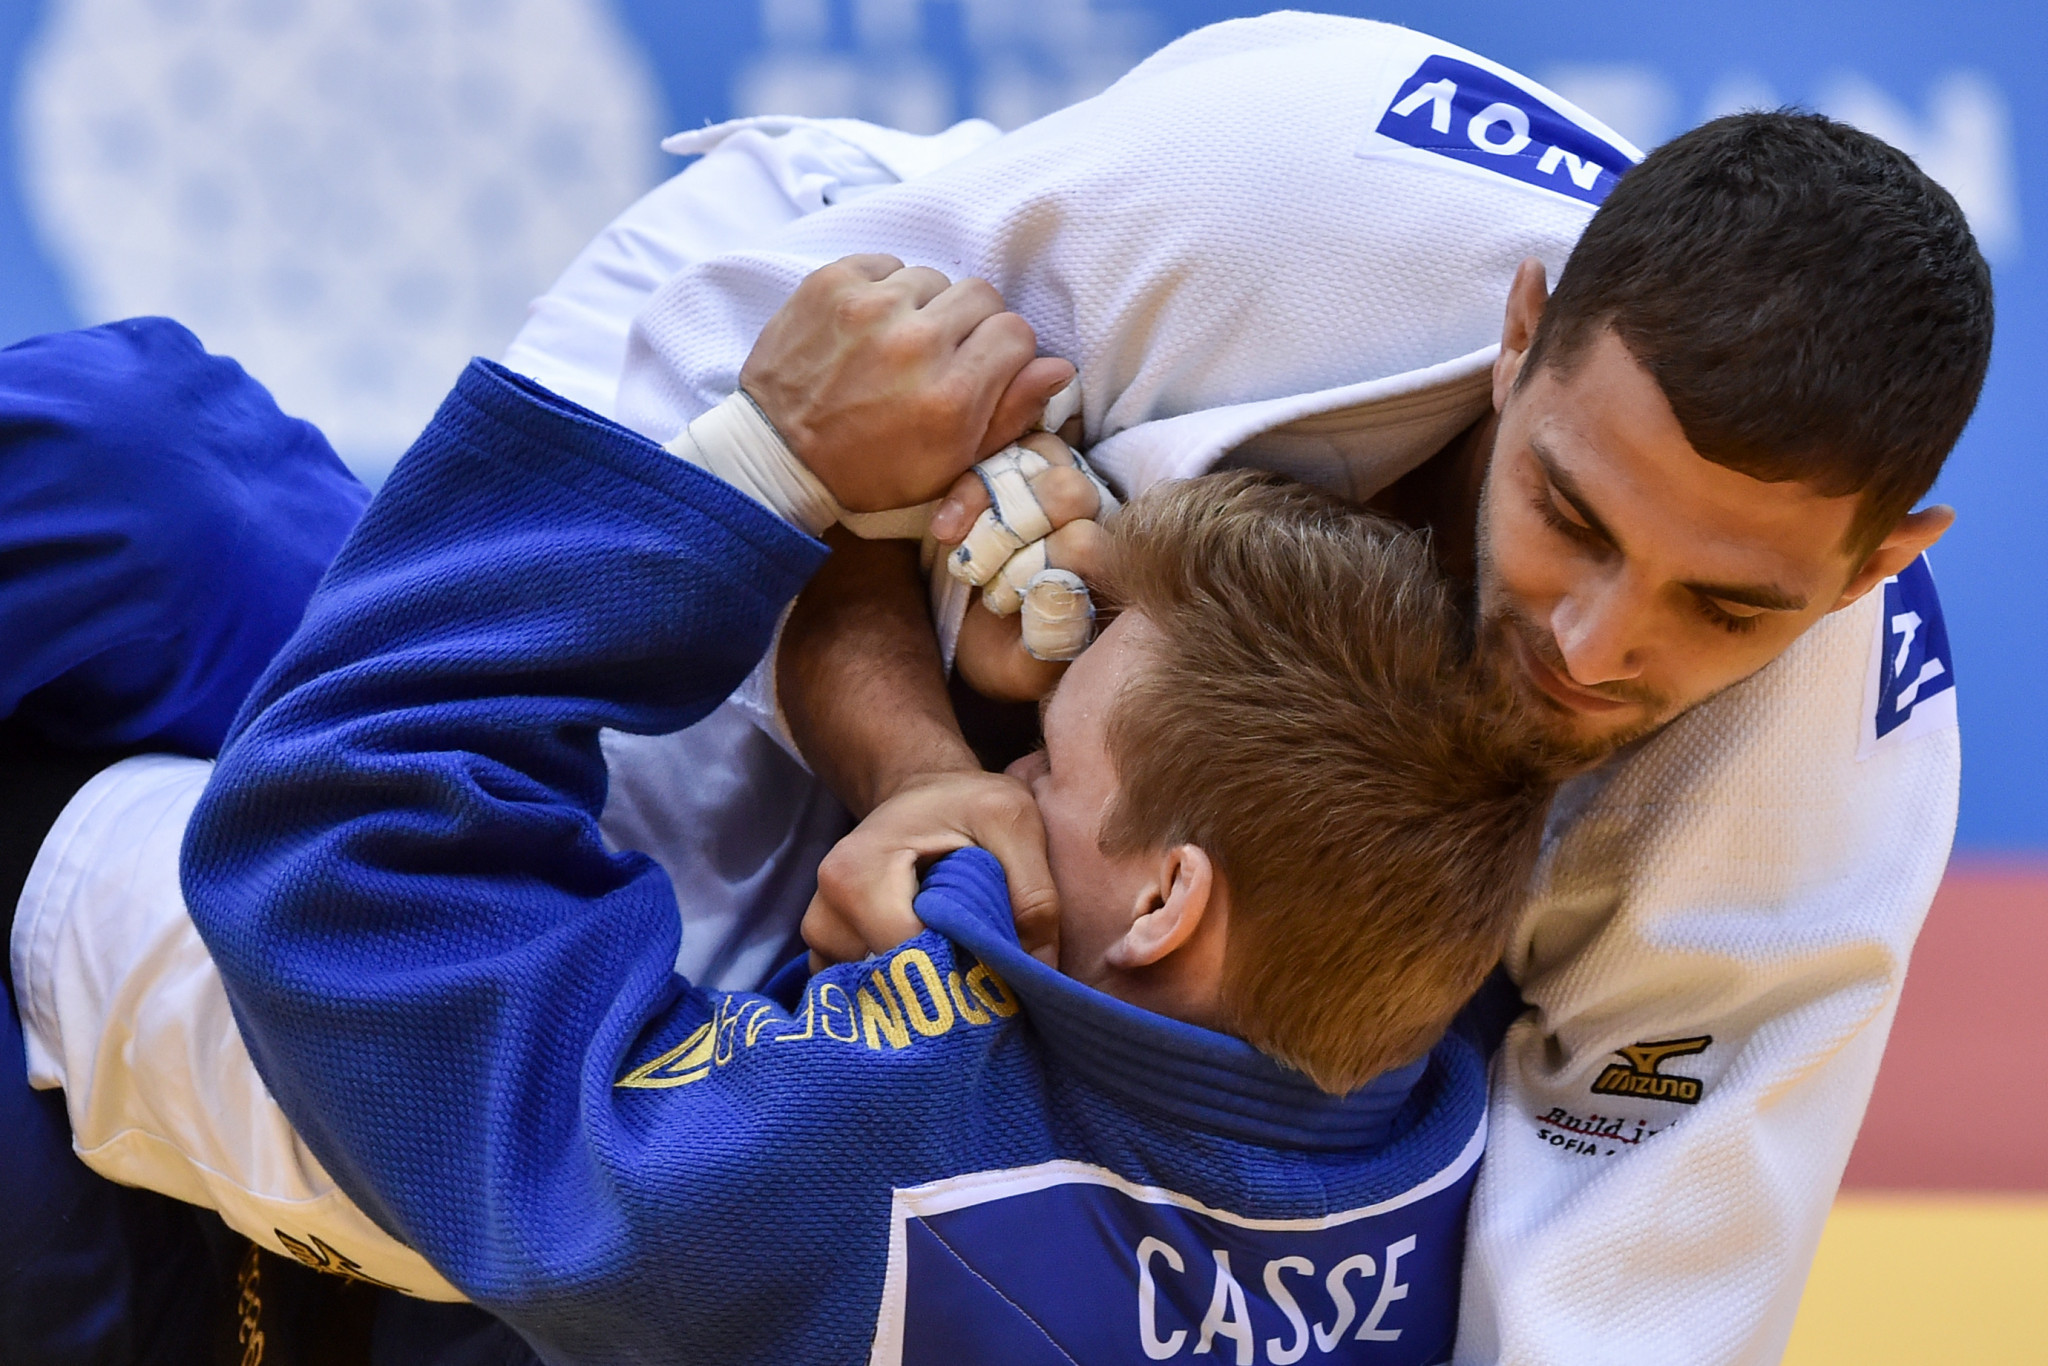 The second day of judo action also took place at Čyžoŭka-Arena ©Minsk 2019